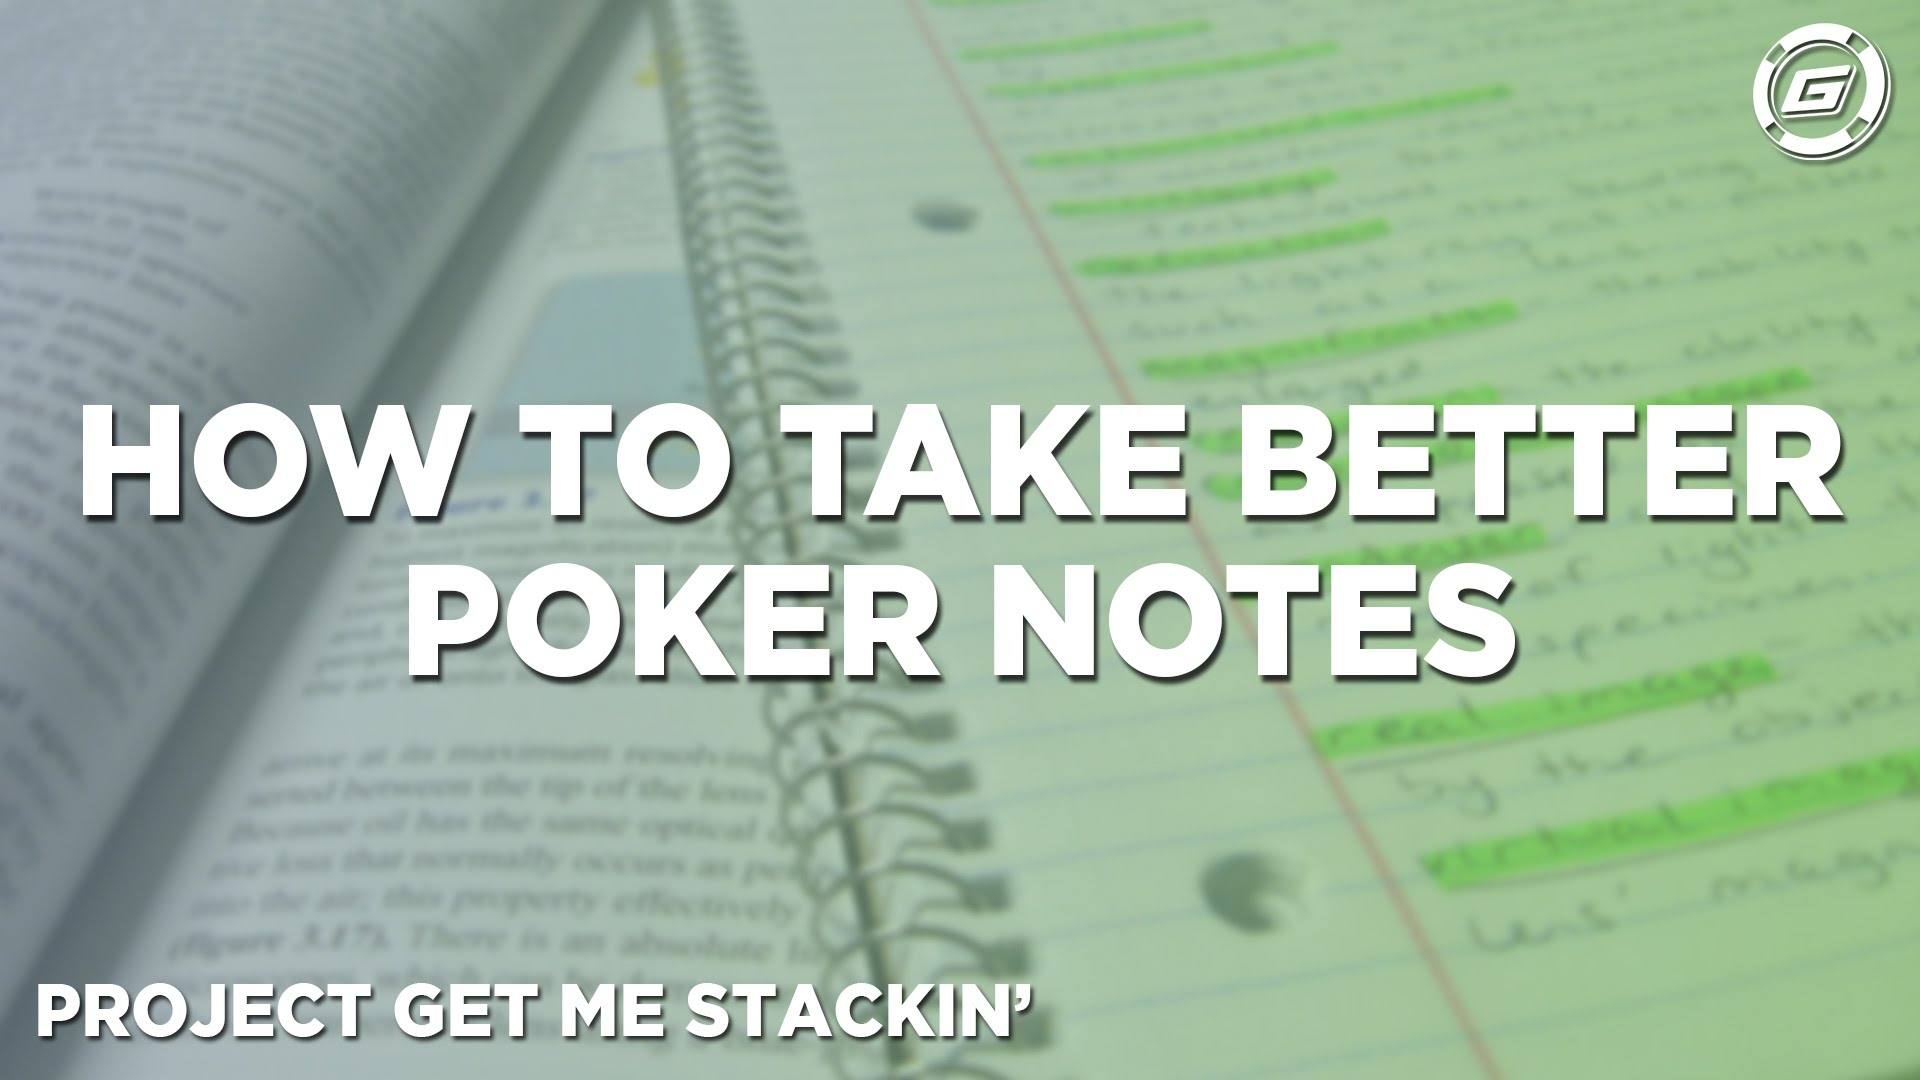 Effective Note-Taking Habits For Playing Poker - LESSON #3